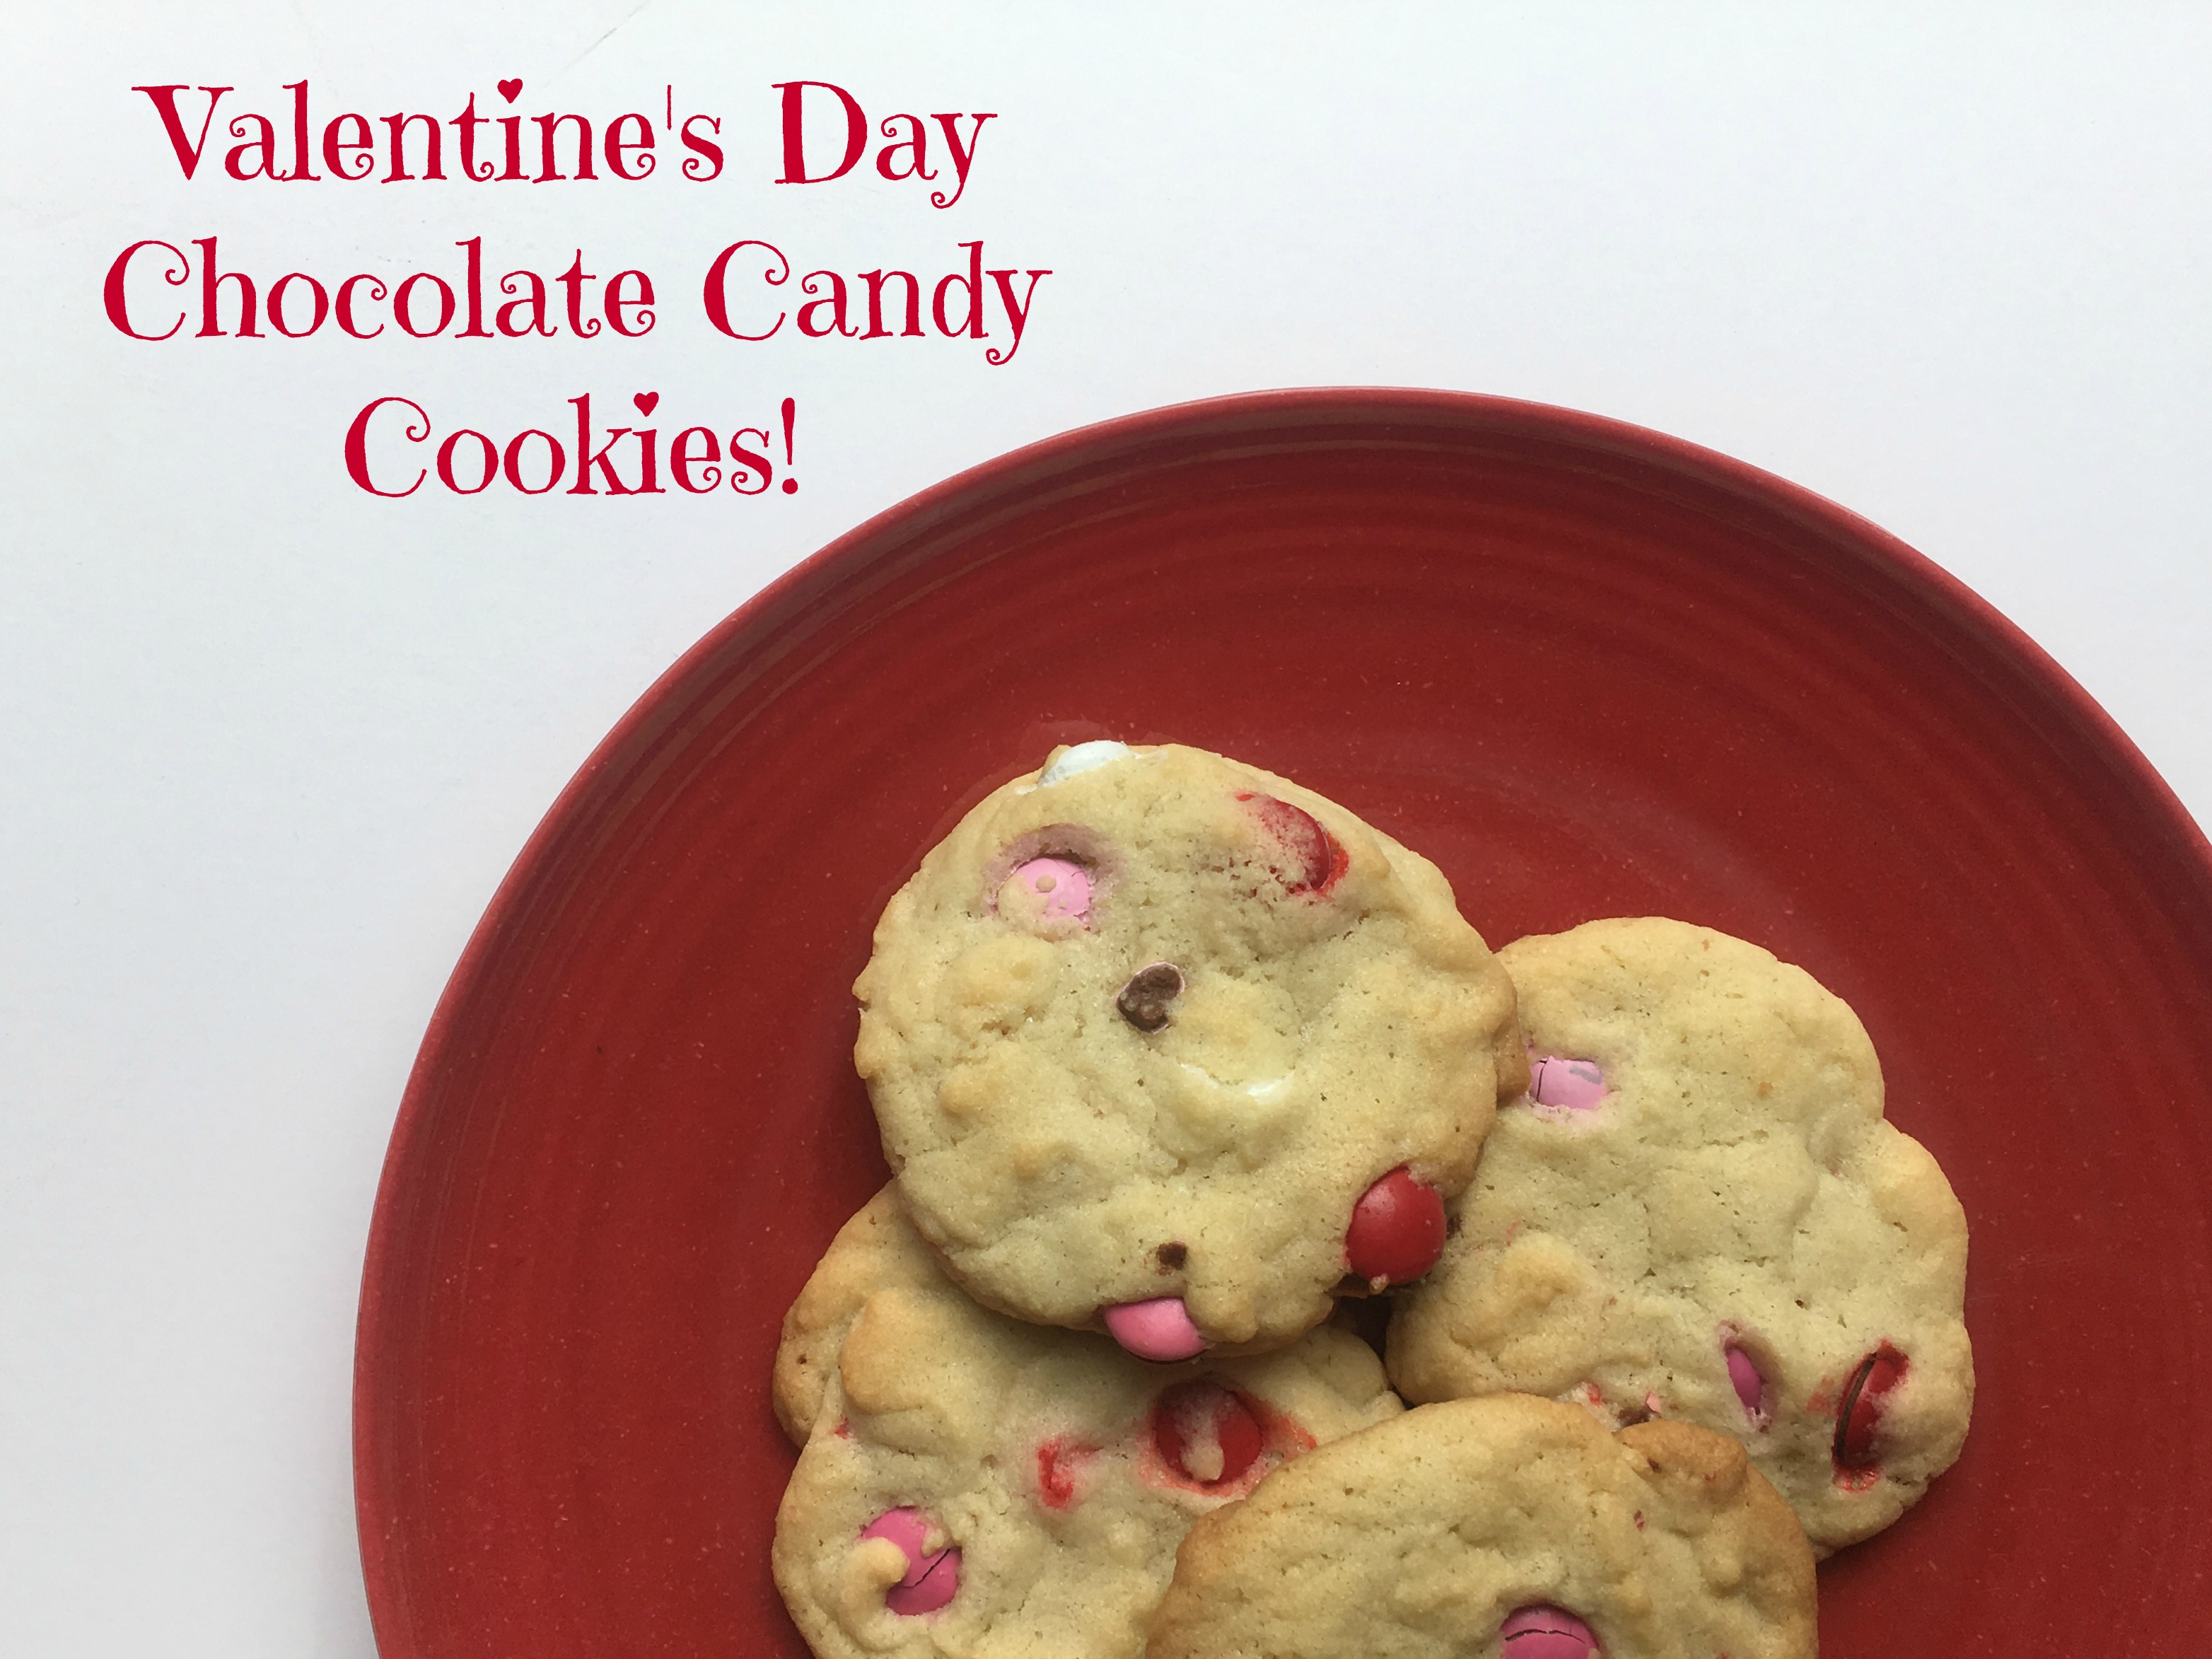 Valentine's Day Chocolate Candy Cookies